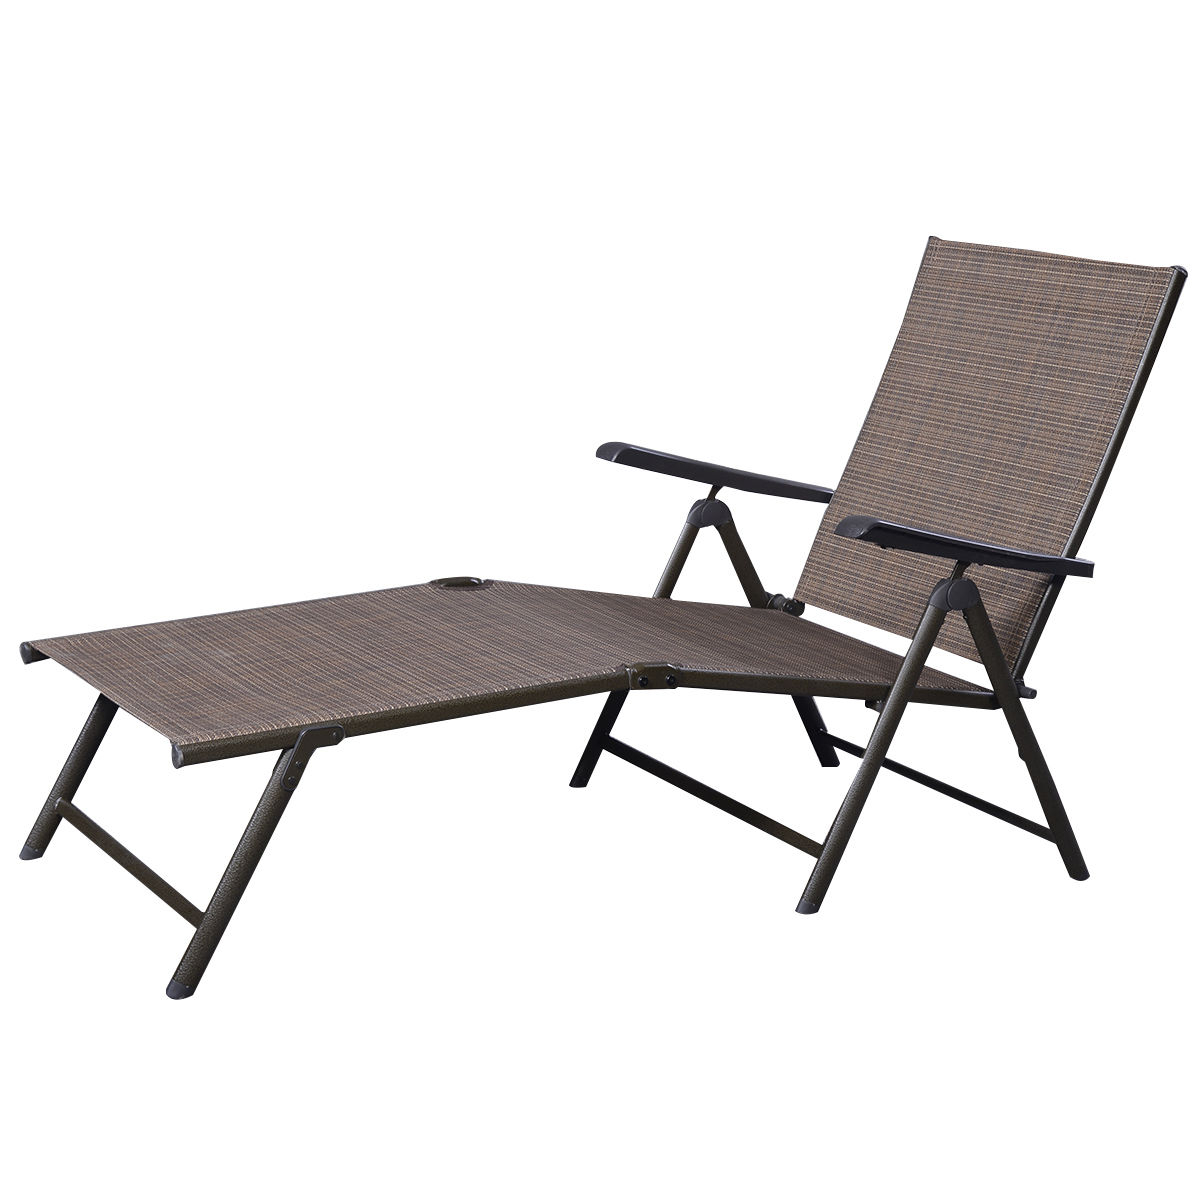 Most Recently Released Outdoor Adjustable Reclining Wicker Chaise Lounges Regarding Outdoor Adjustable Chaise Lounge Chair (View 11 of 25)